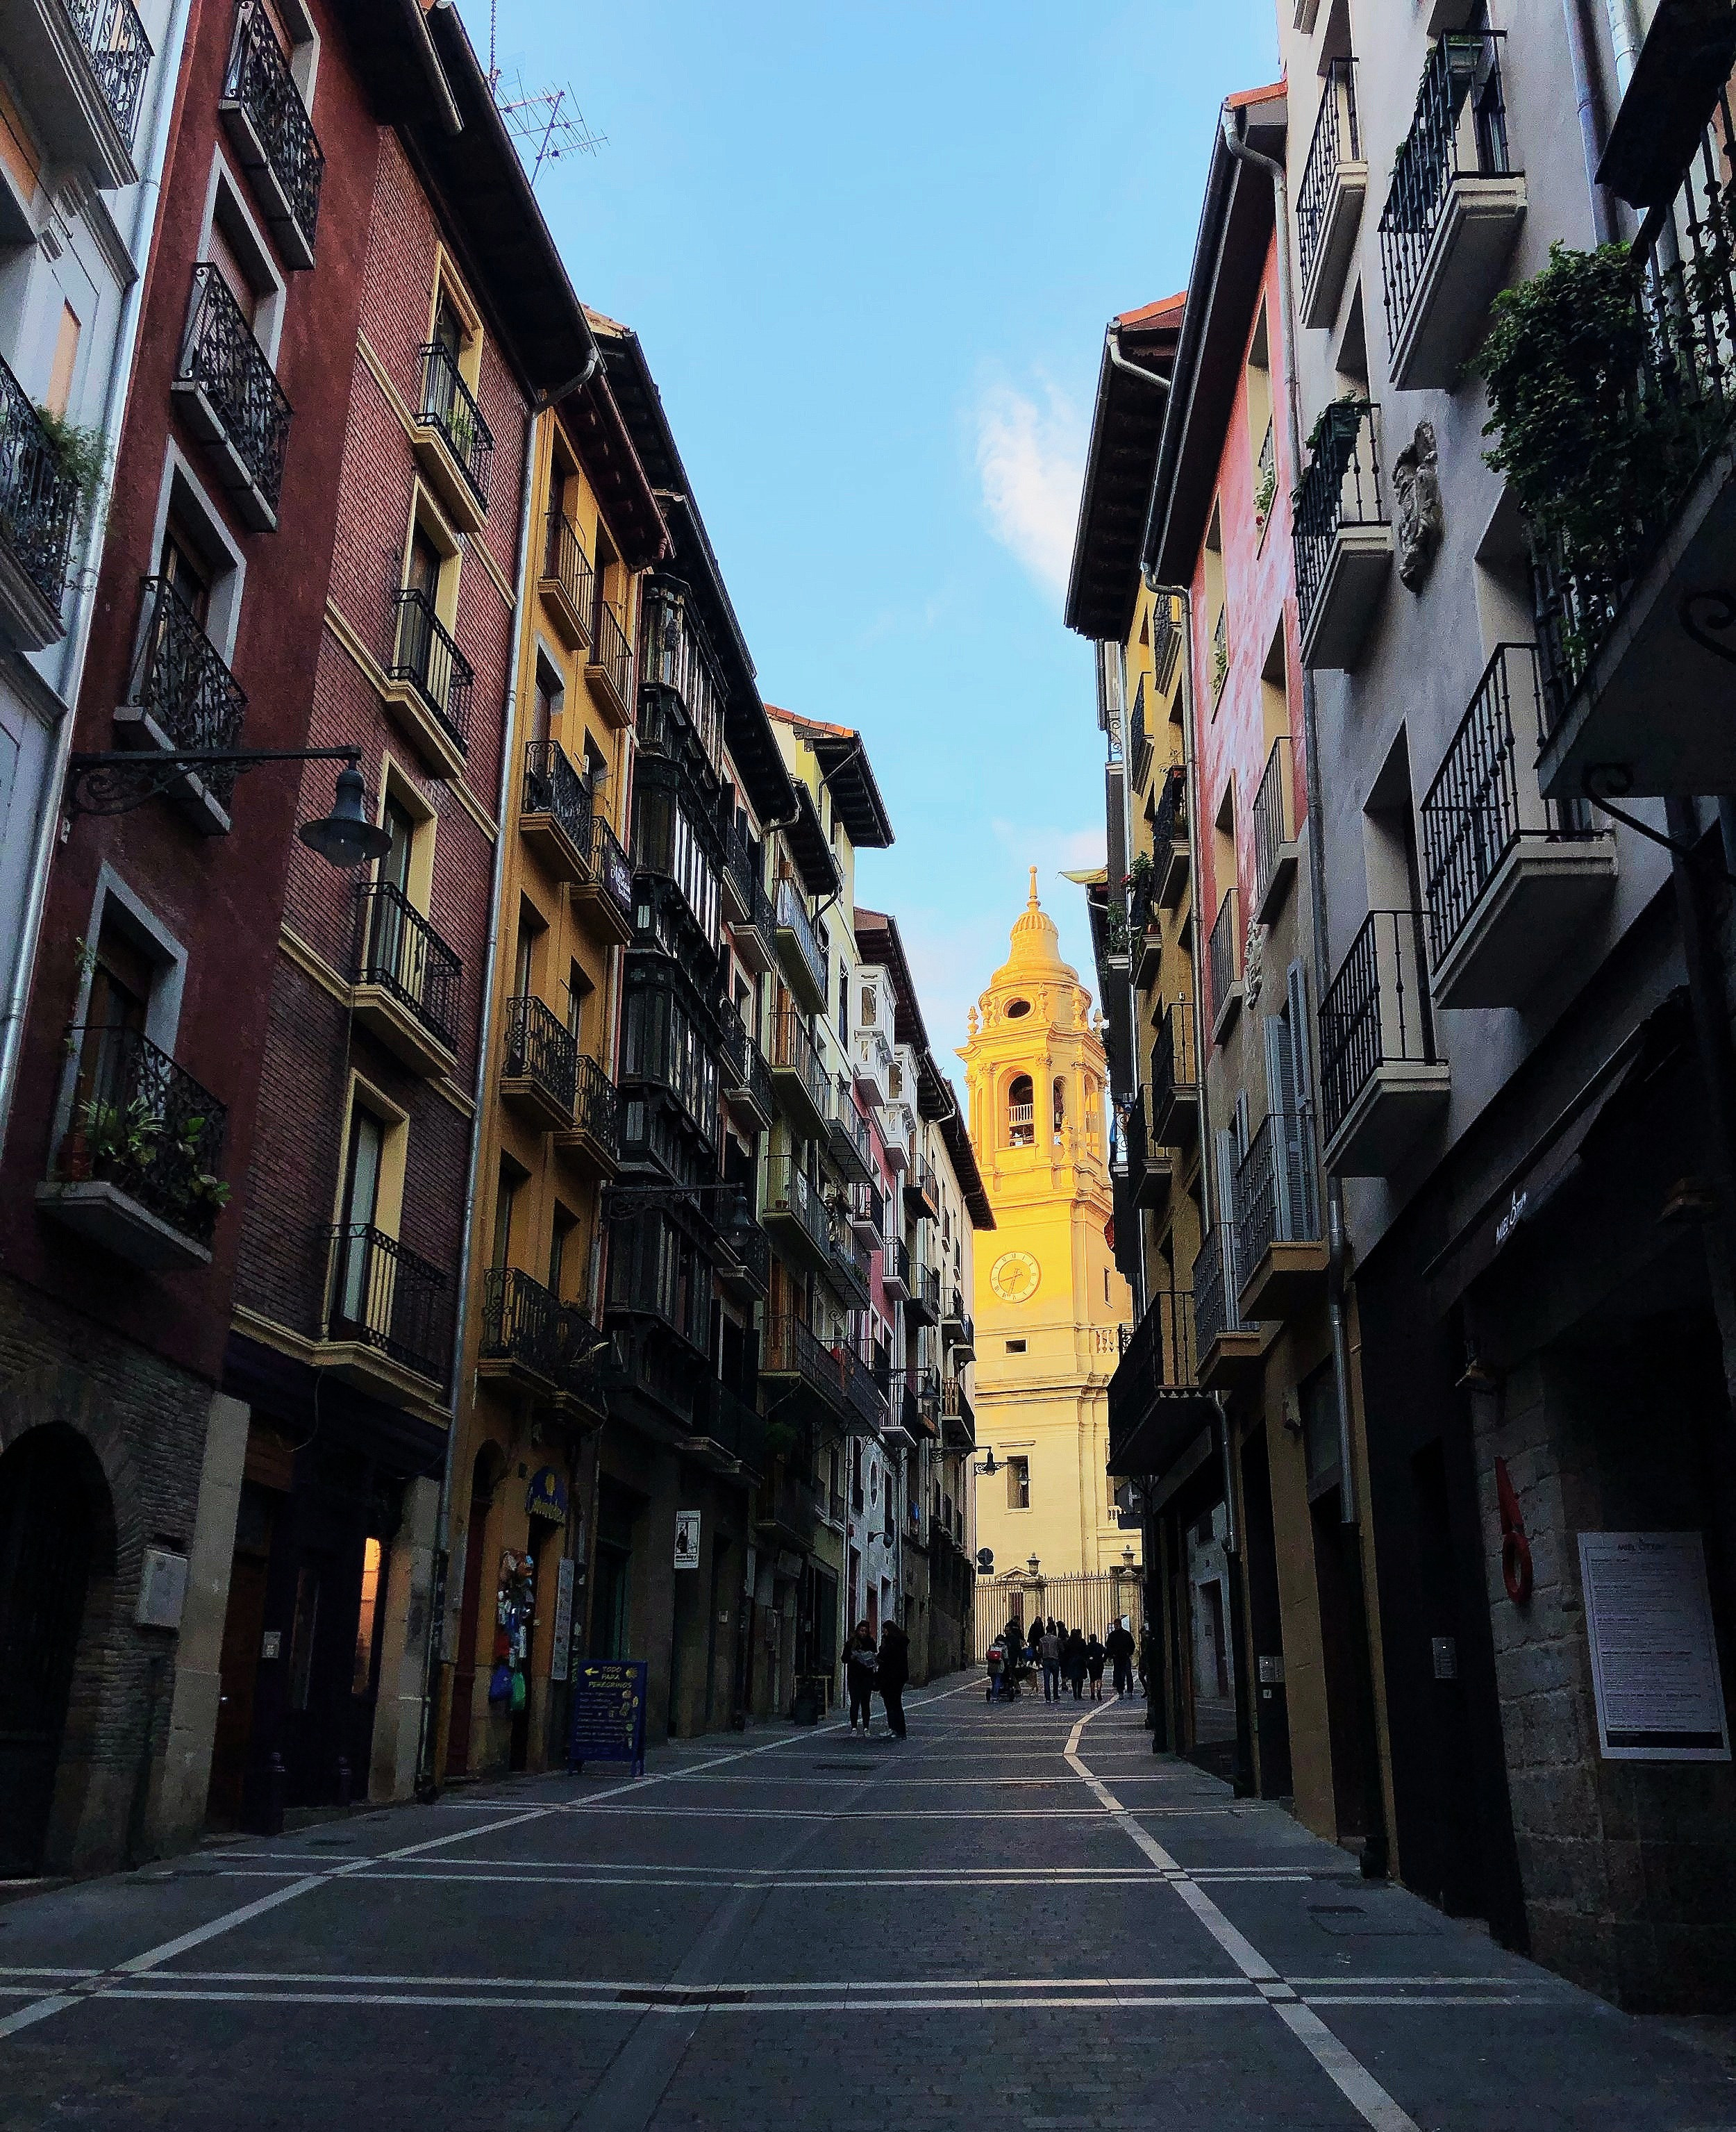 A normal street in the old town of Pamplona. Cars are able to be driven here but rarely are. The Pamplona Cathedral glows in a setting sun at the end of the street.